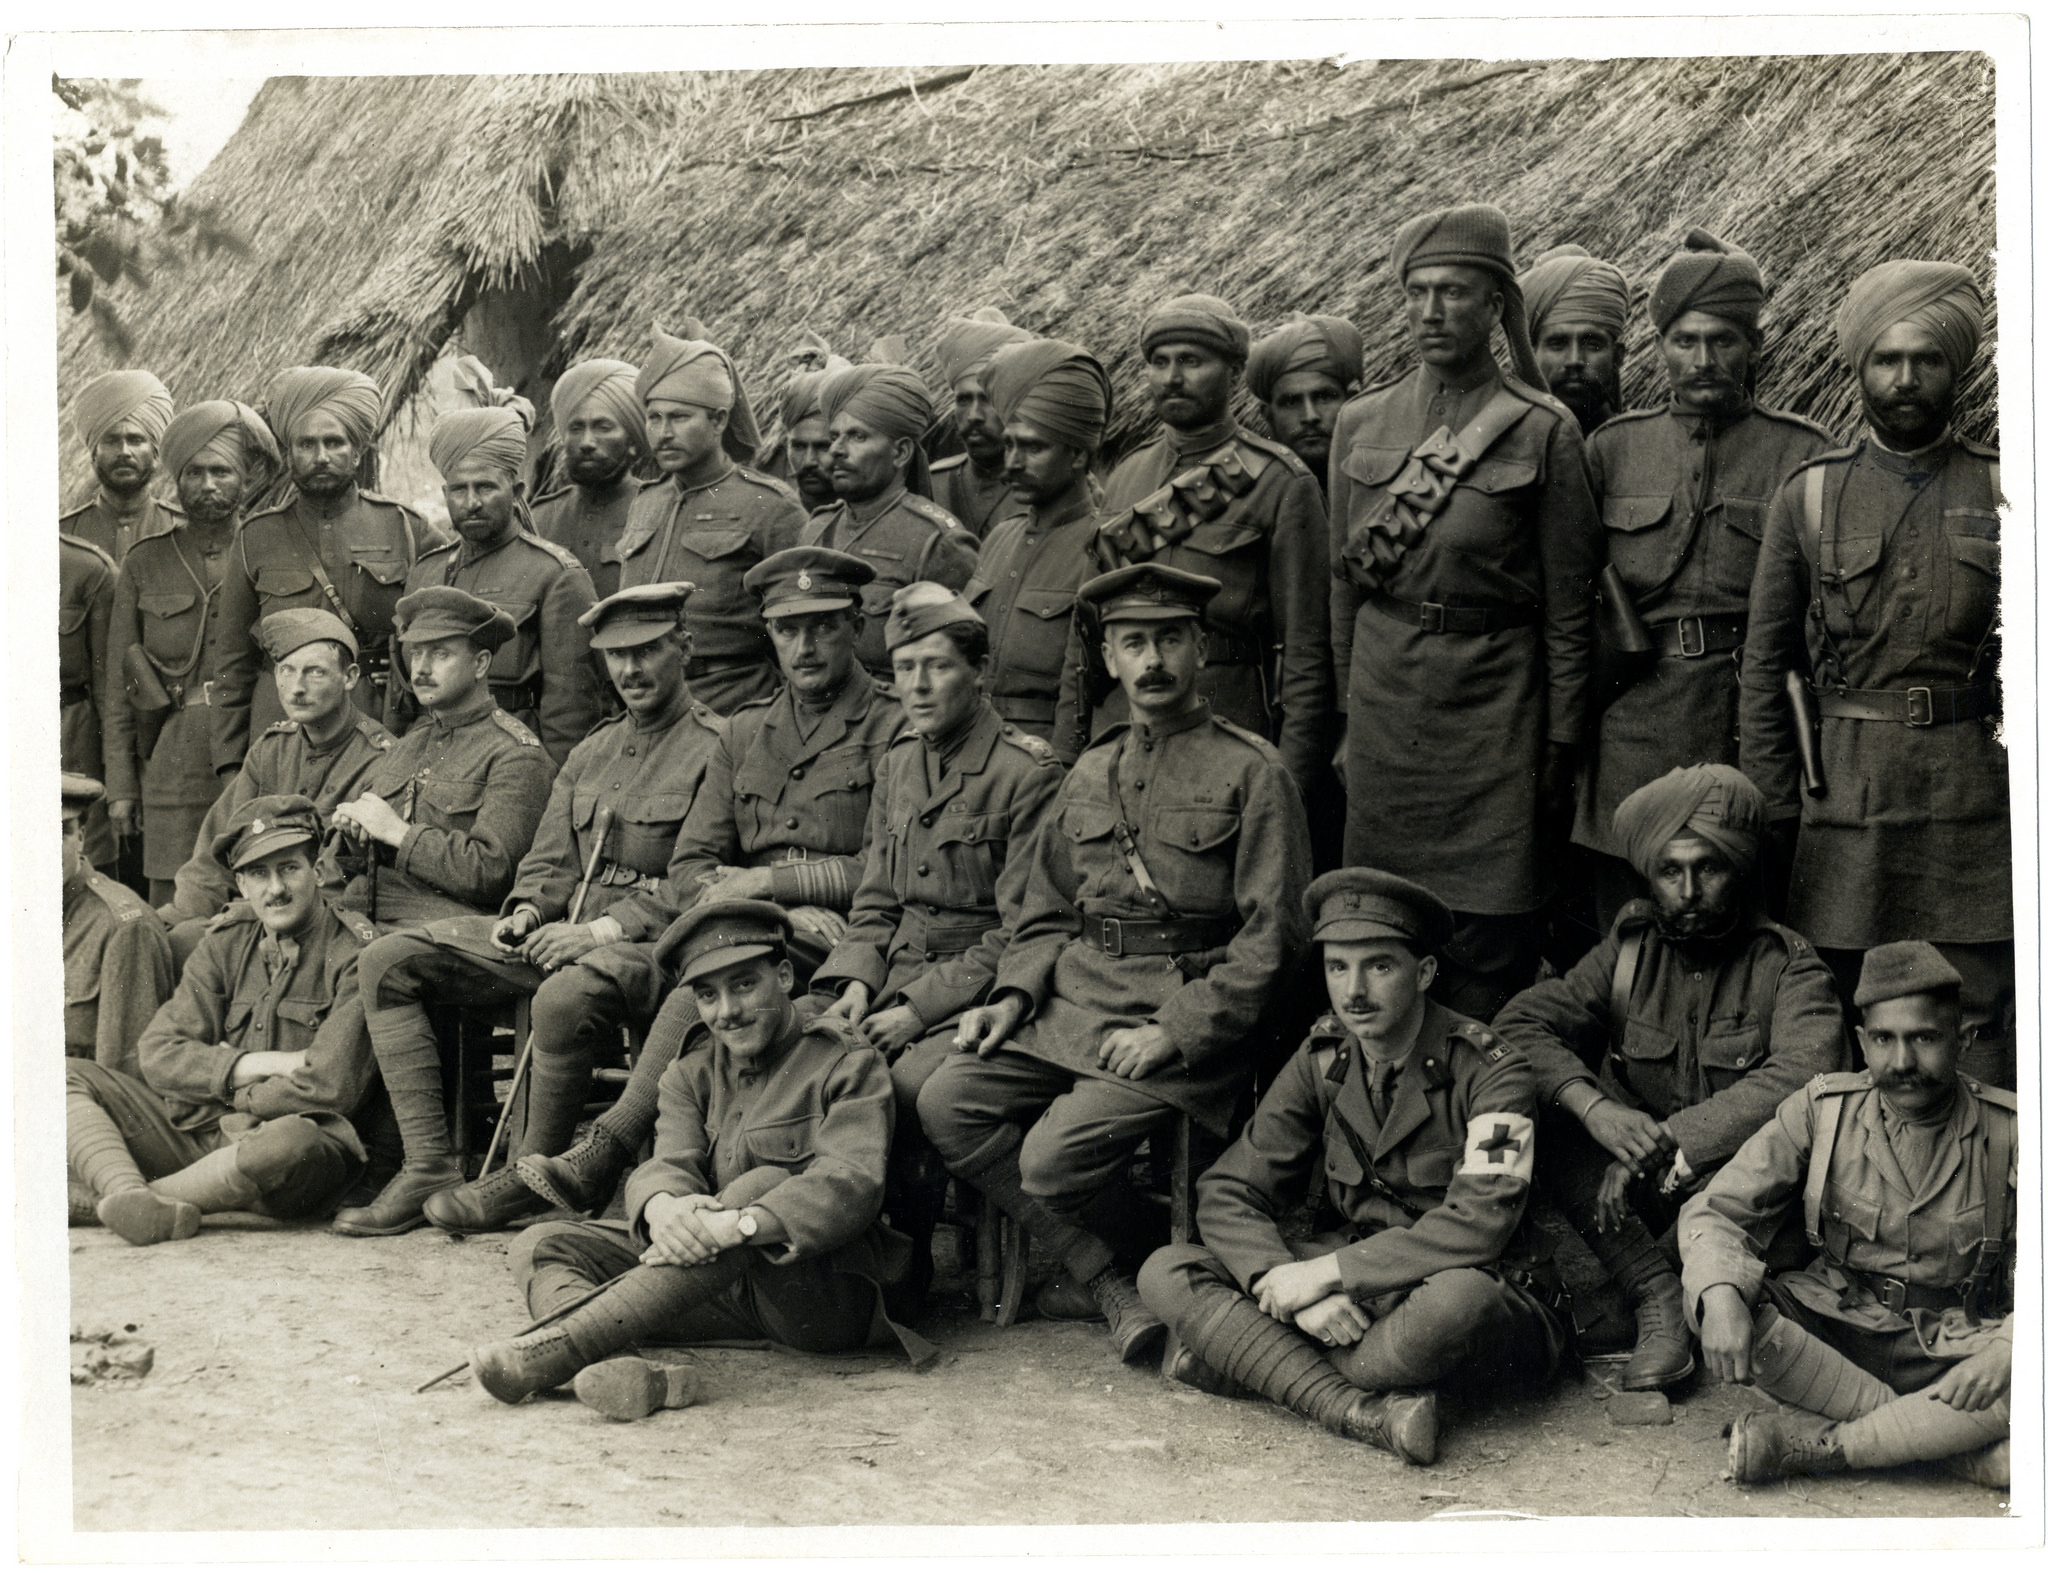 Britain S Muslim Sol Rs Of World War 1 Find A Voice In